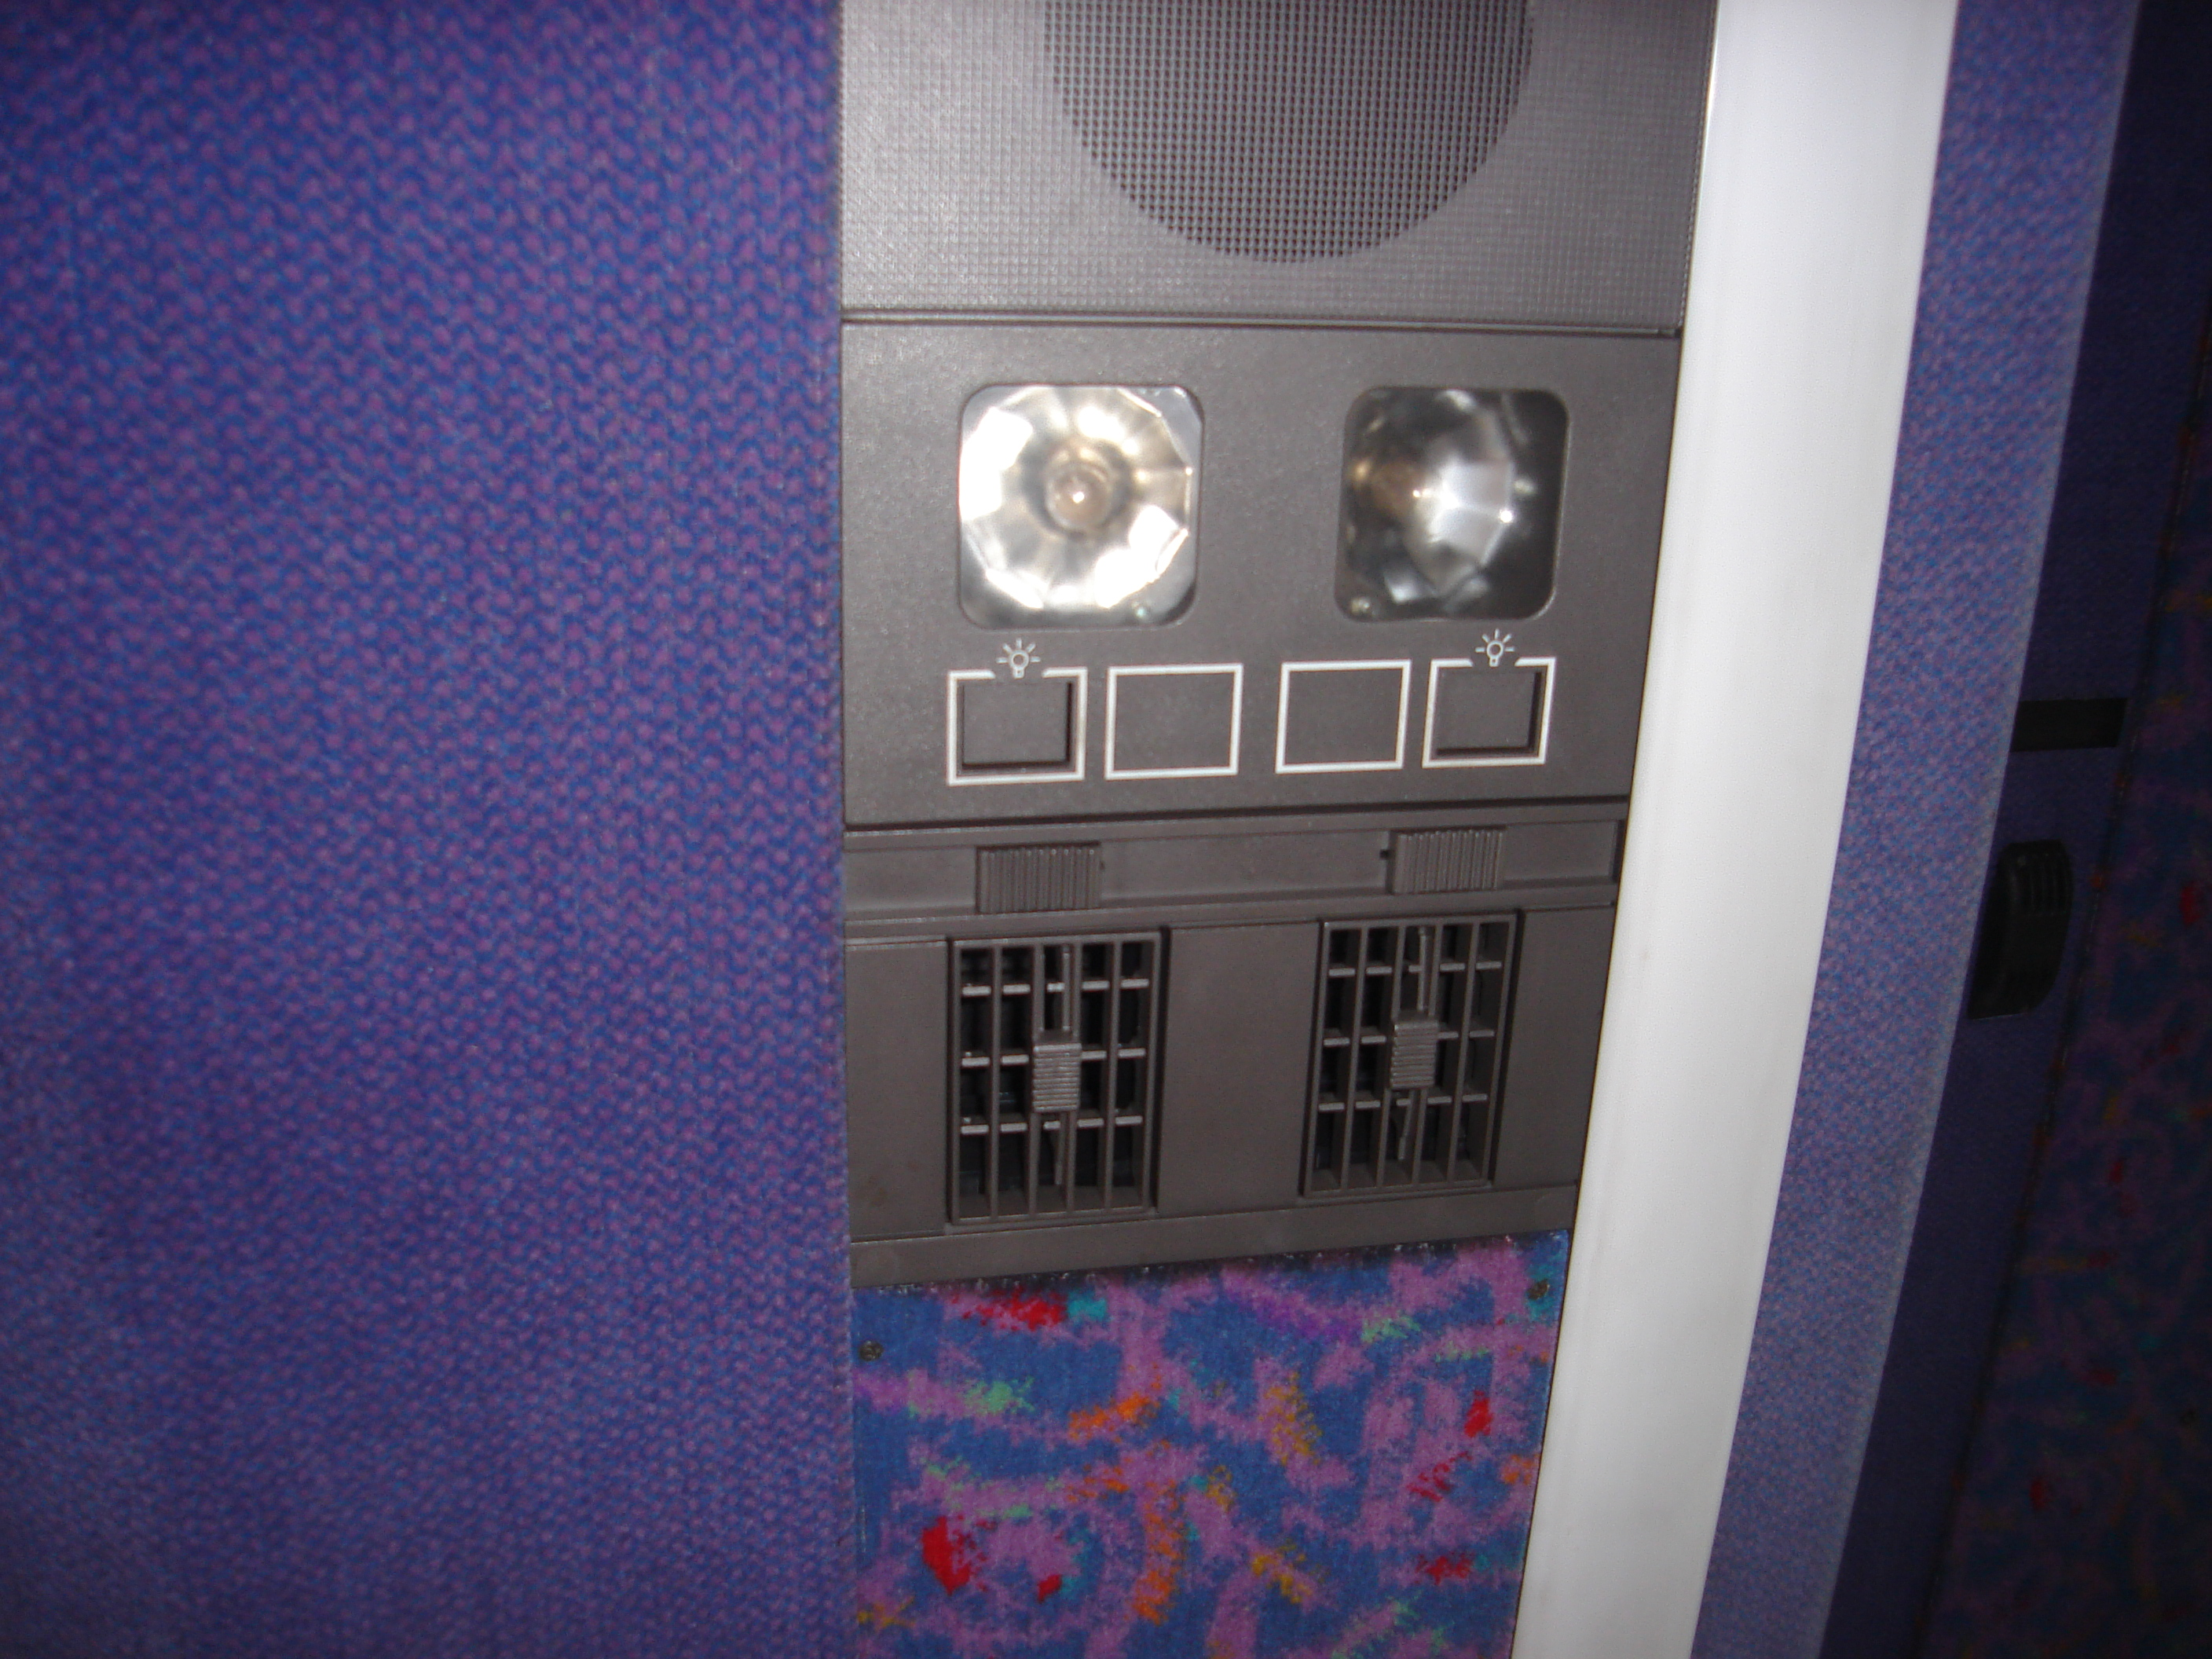 Air-con vents on the ceiling of a coach